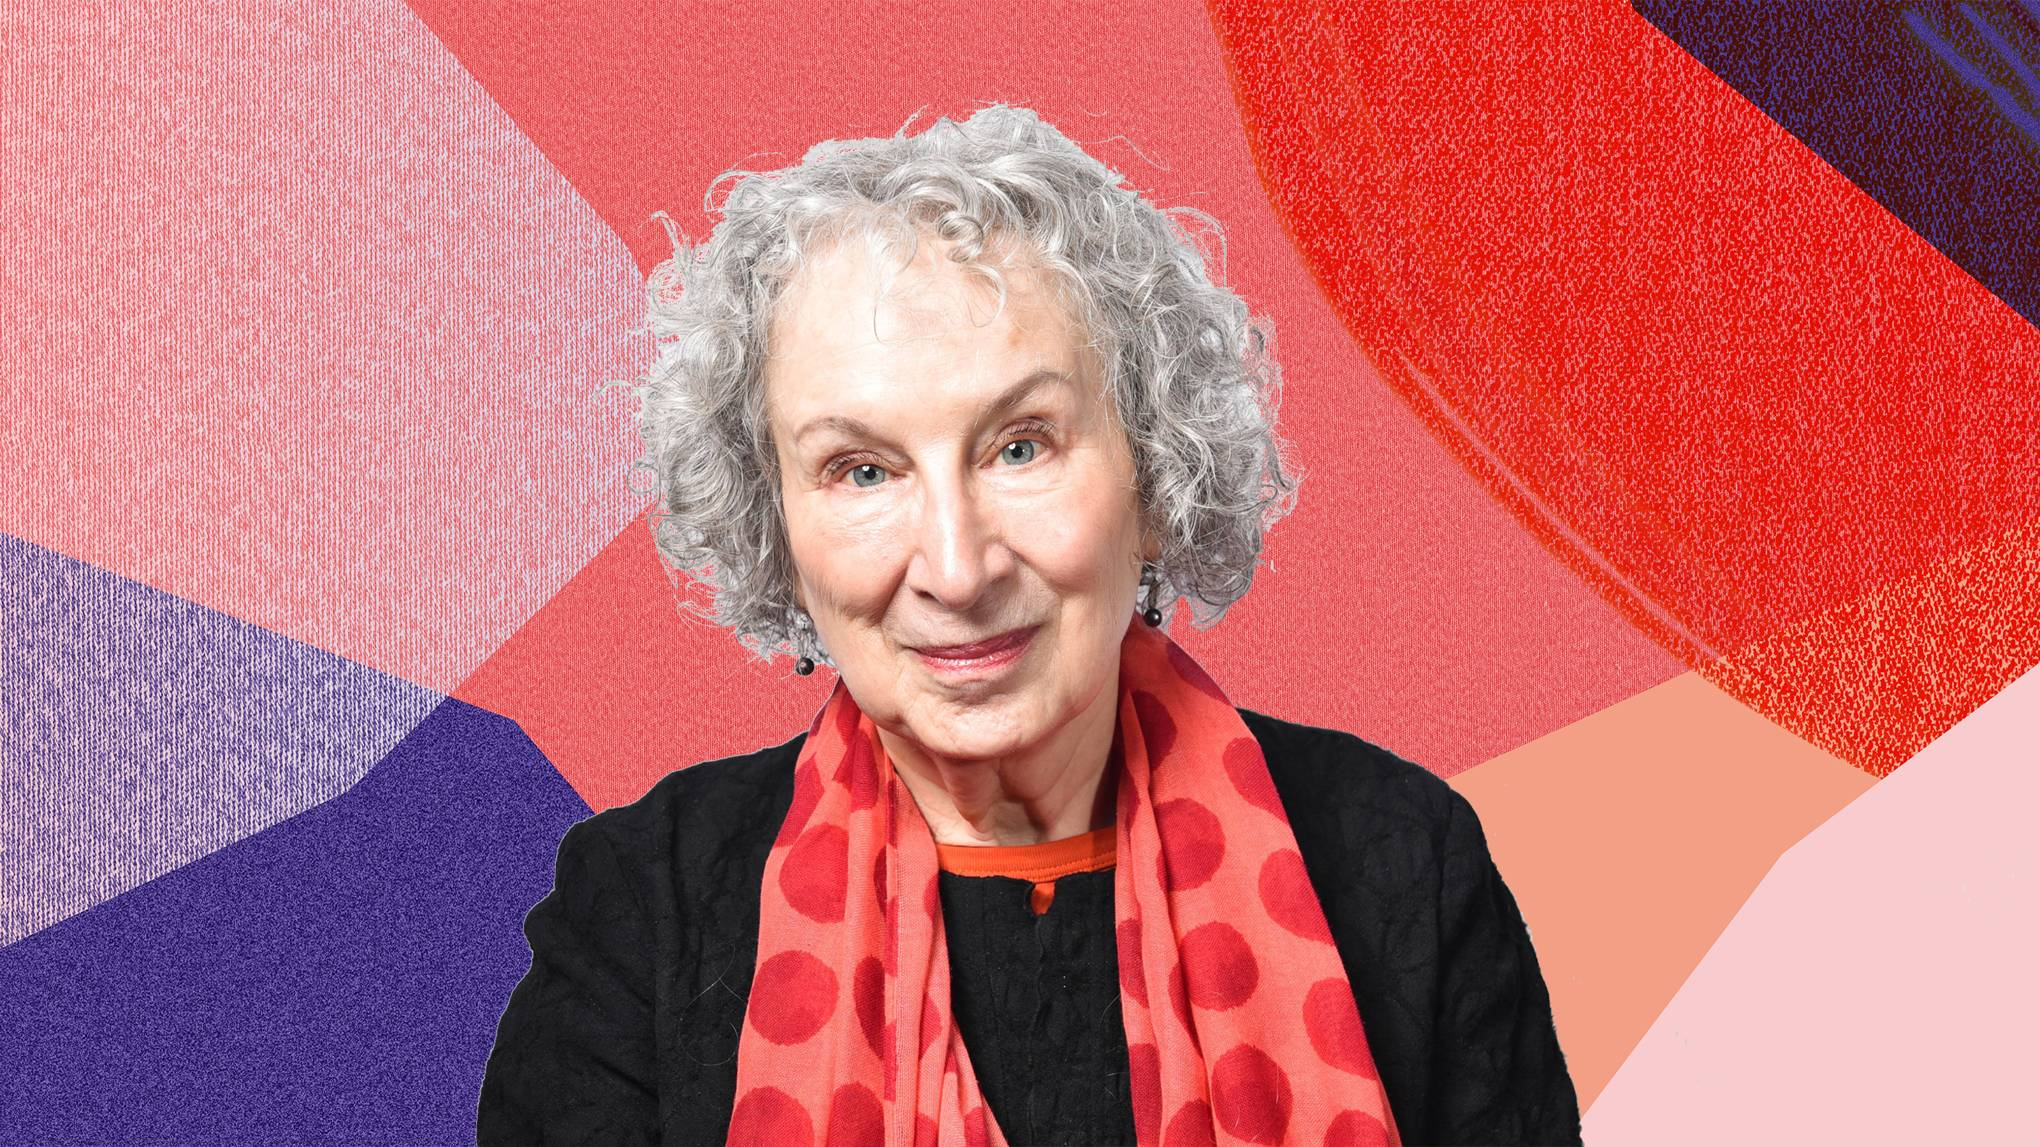 Margaret Atwood on #MeToo, consent, and the enduring resonance of 'The Handmaid's Tale'